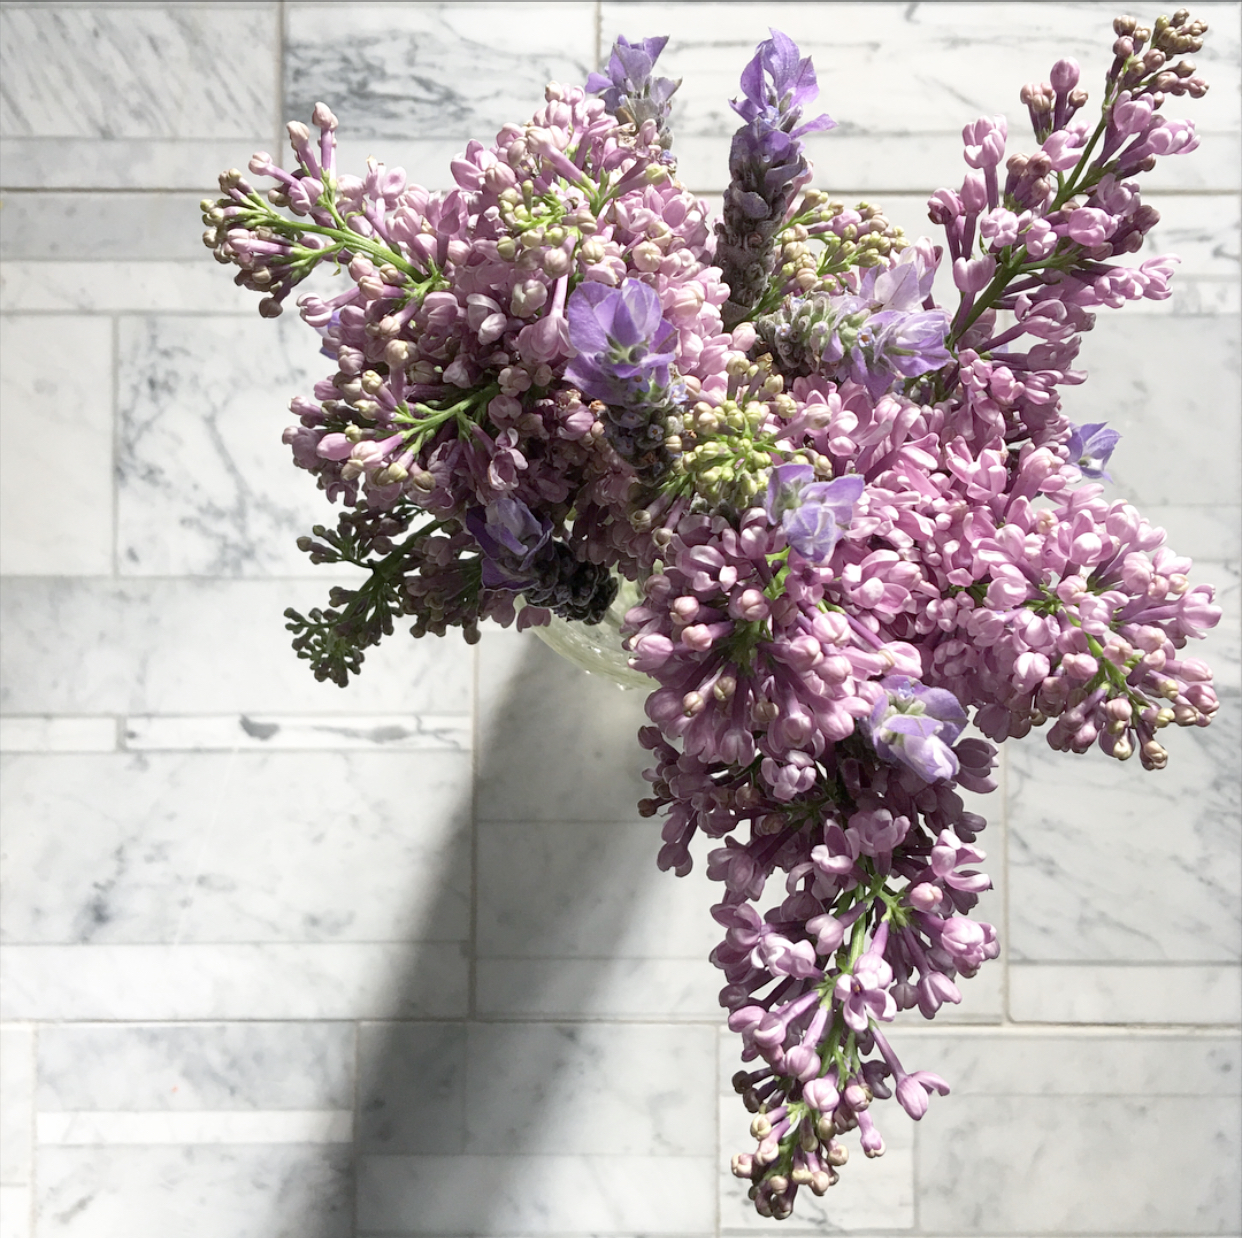 Lavender and Lilac. Photograph by Michelle Ogundehin. Flowers by The Real Flower Company. 'Lithoverde' marble by Salvatori.